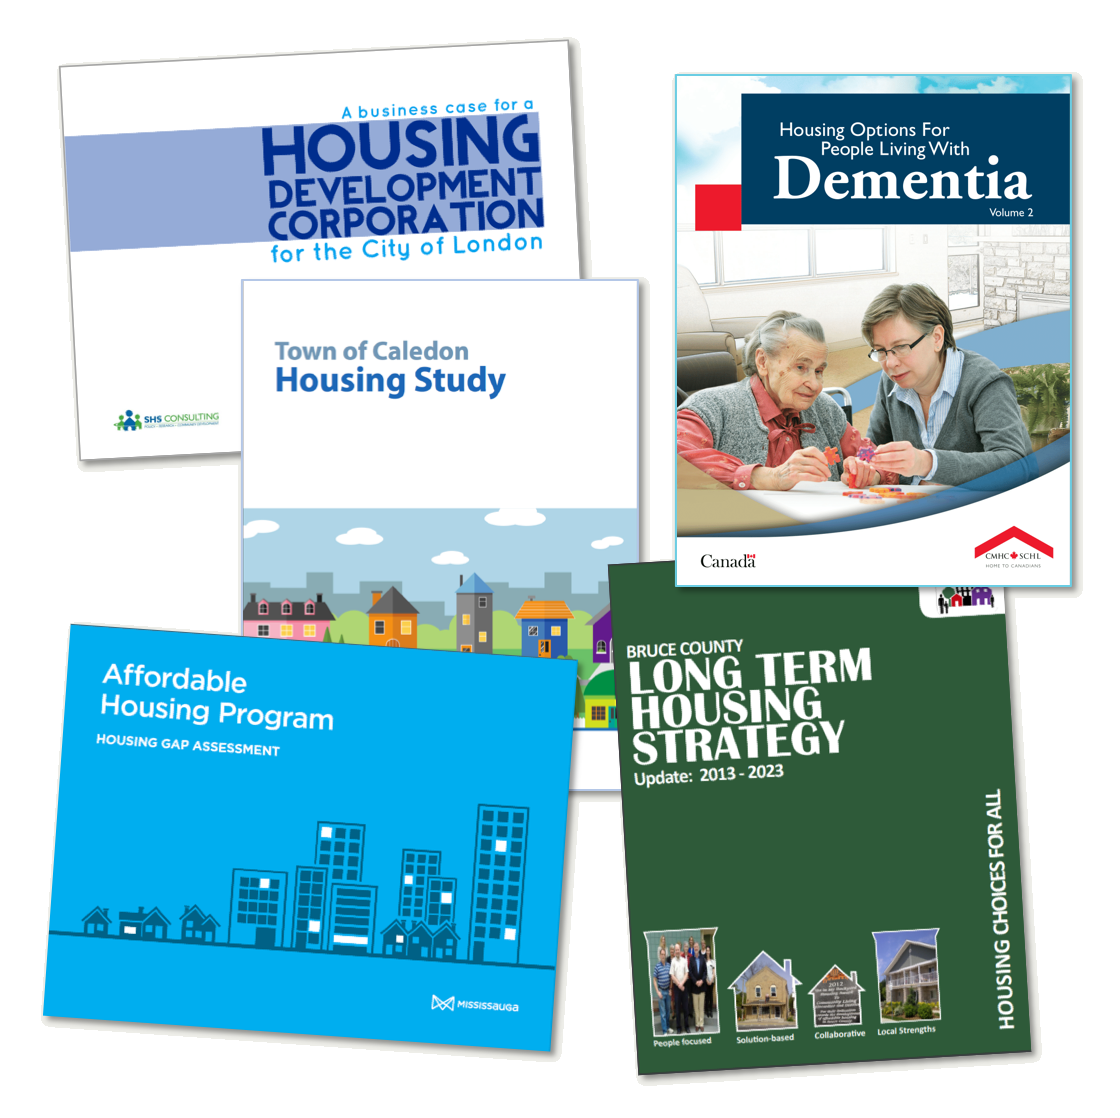 Image of housing report covers